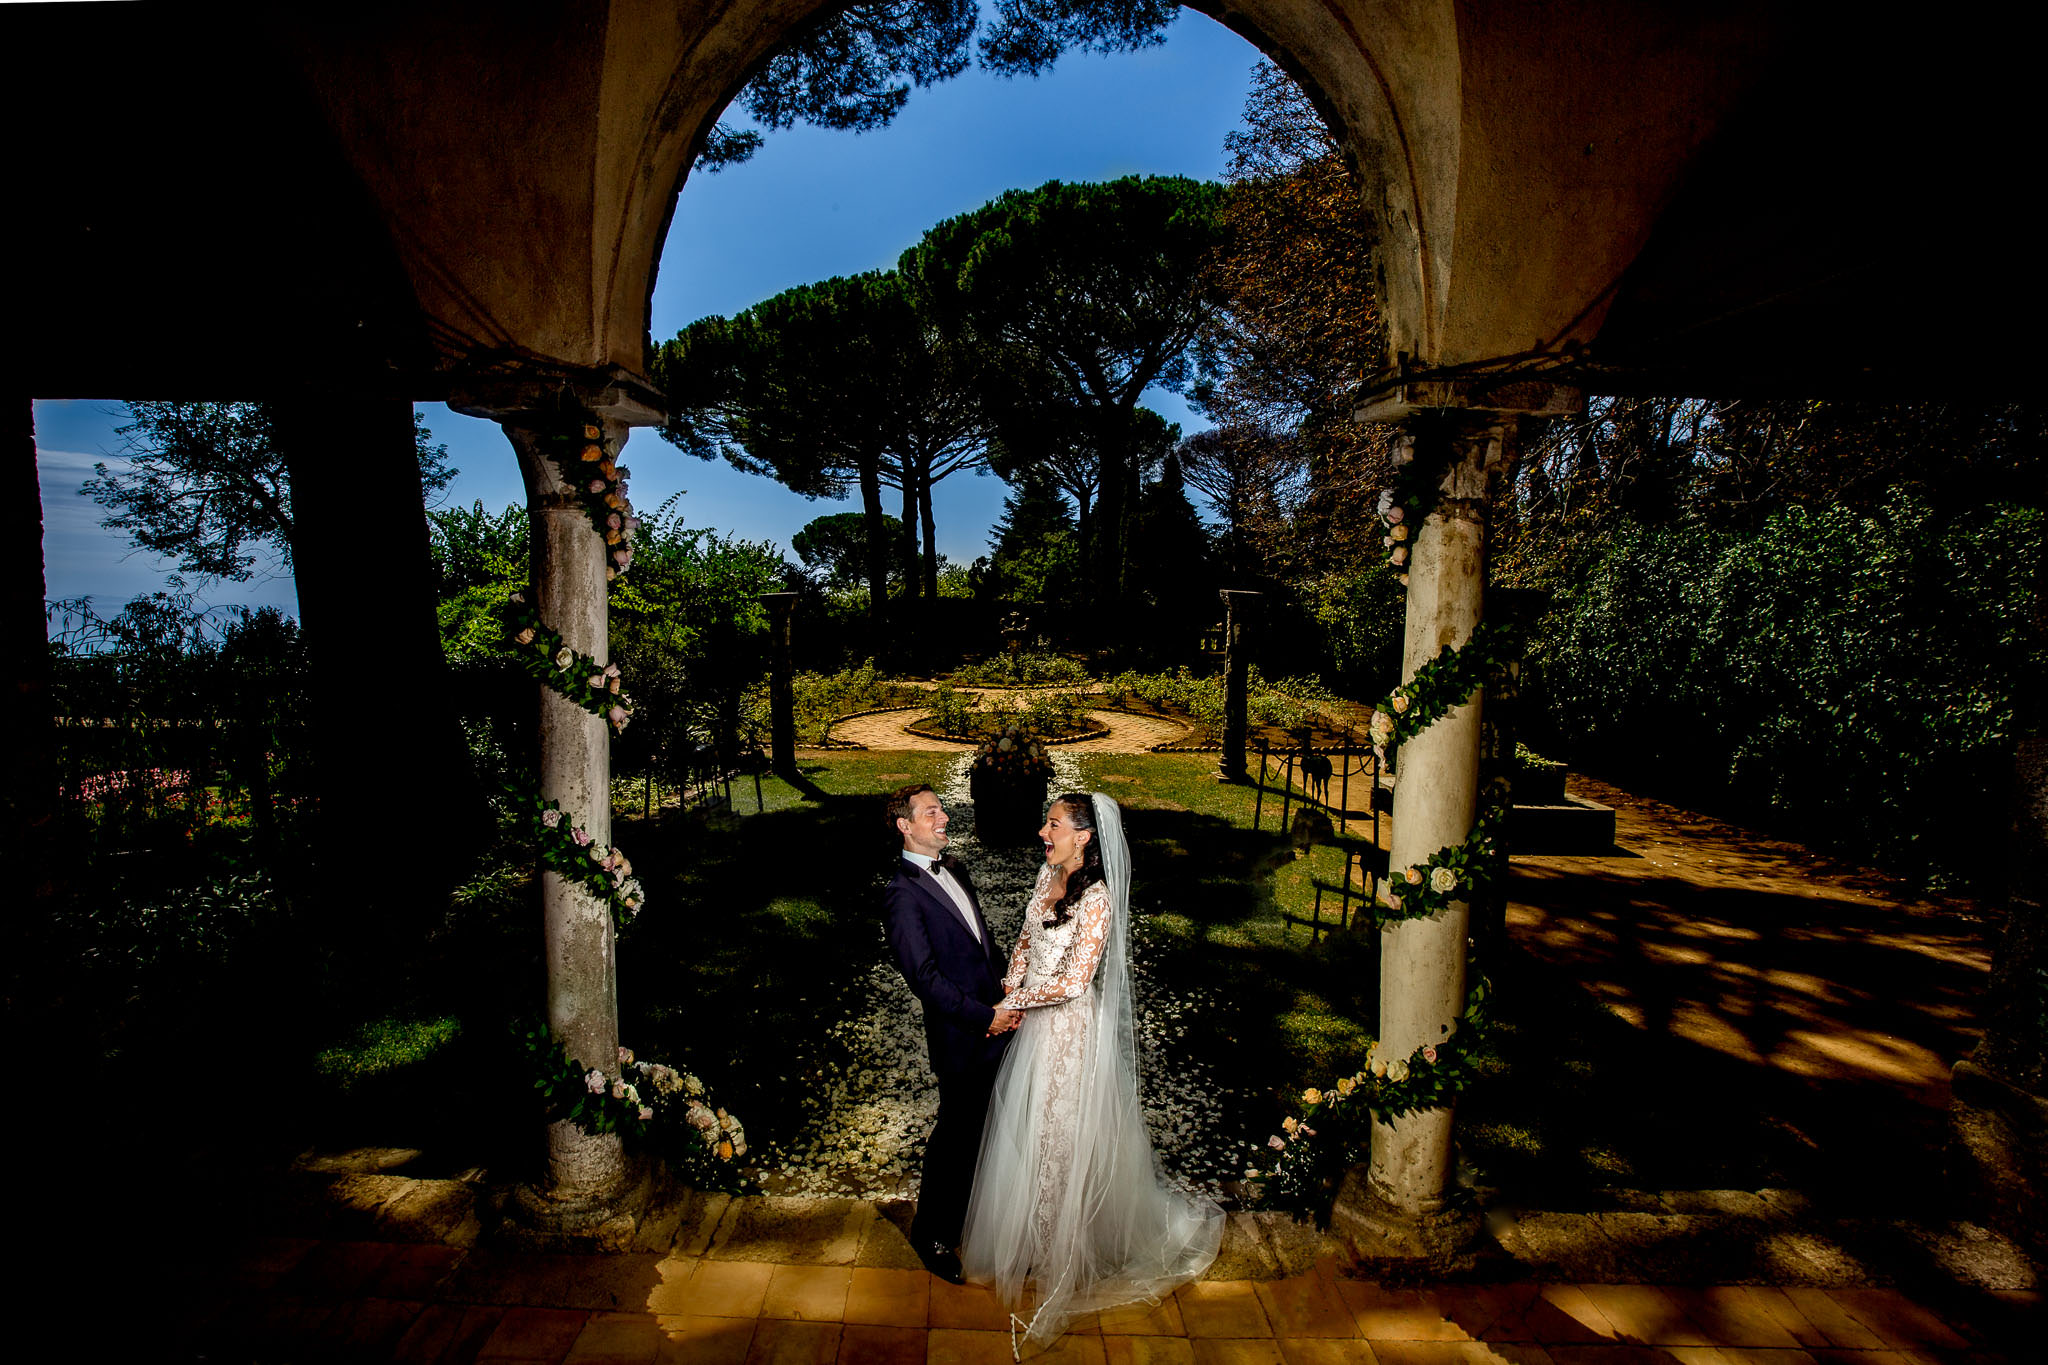 Villa Cimbrone Wedding Amalfi Italy Bride and Groom Laughing in courtyard